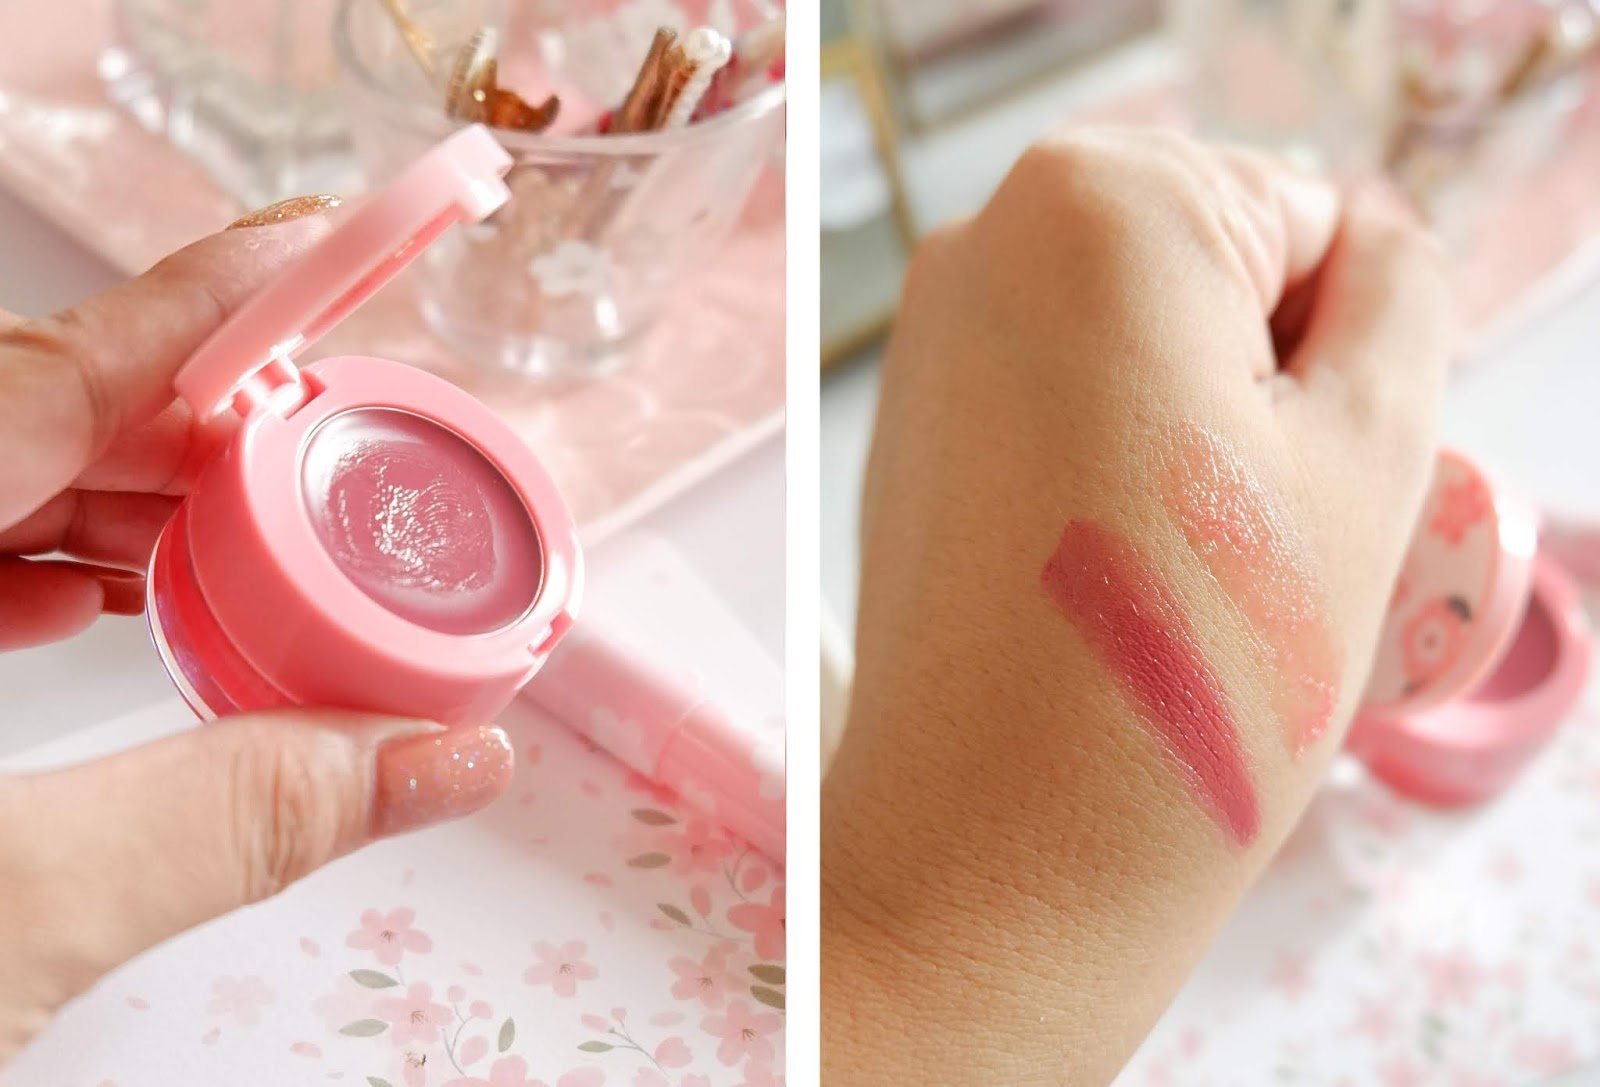 BLK COSMETICS K-BEAUTY COLLECTION: SWEET LIP DUO (TULIP) REVIEW